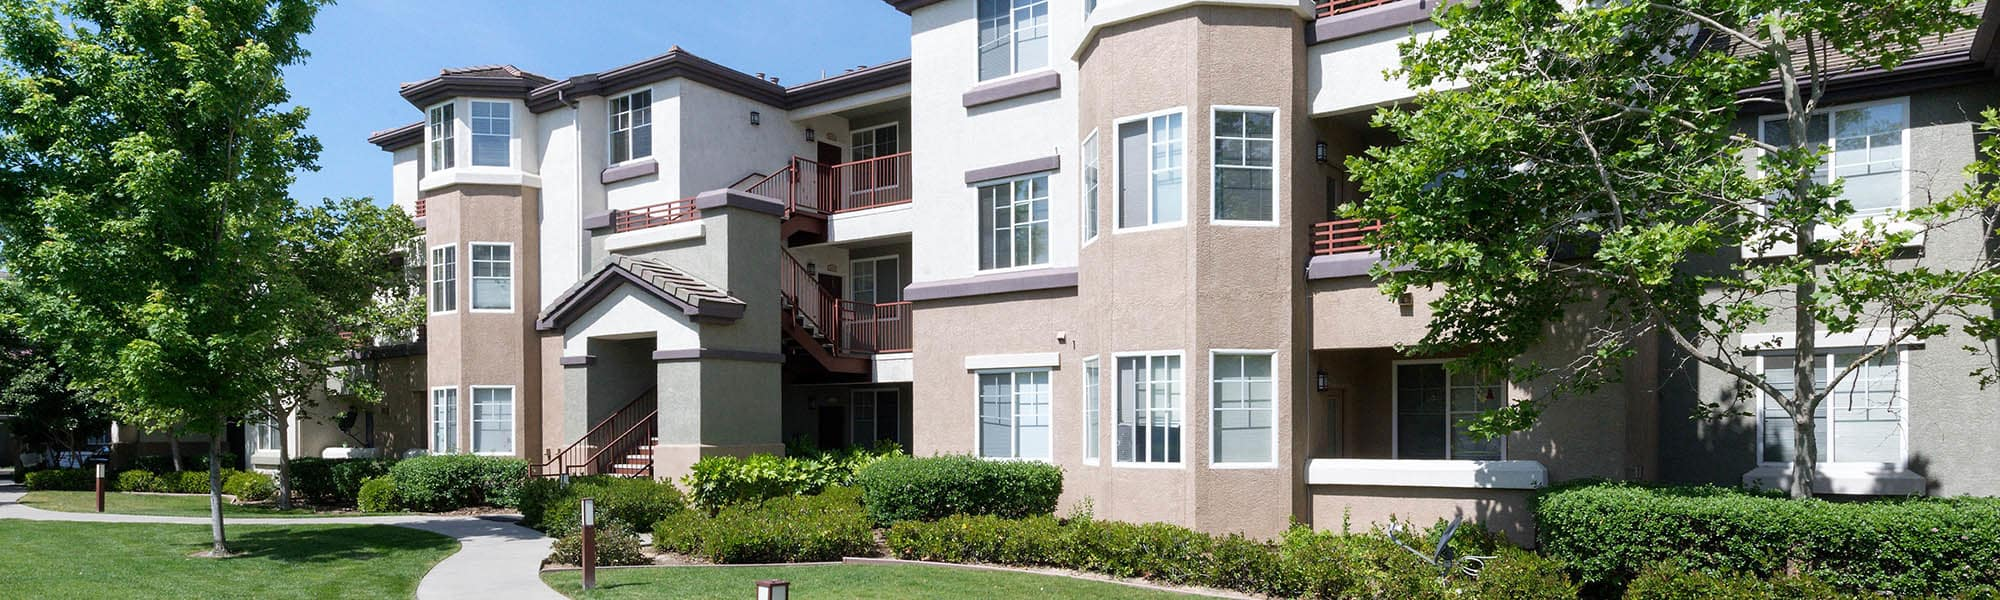 Learn about our neighborhood at The Artisan Apartment Homes in Sacramento, California on our website